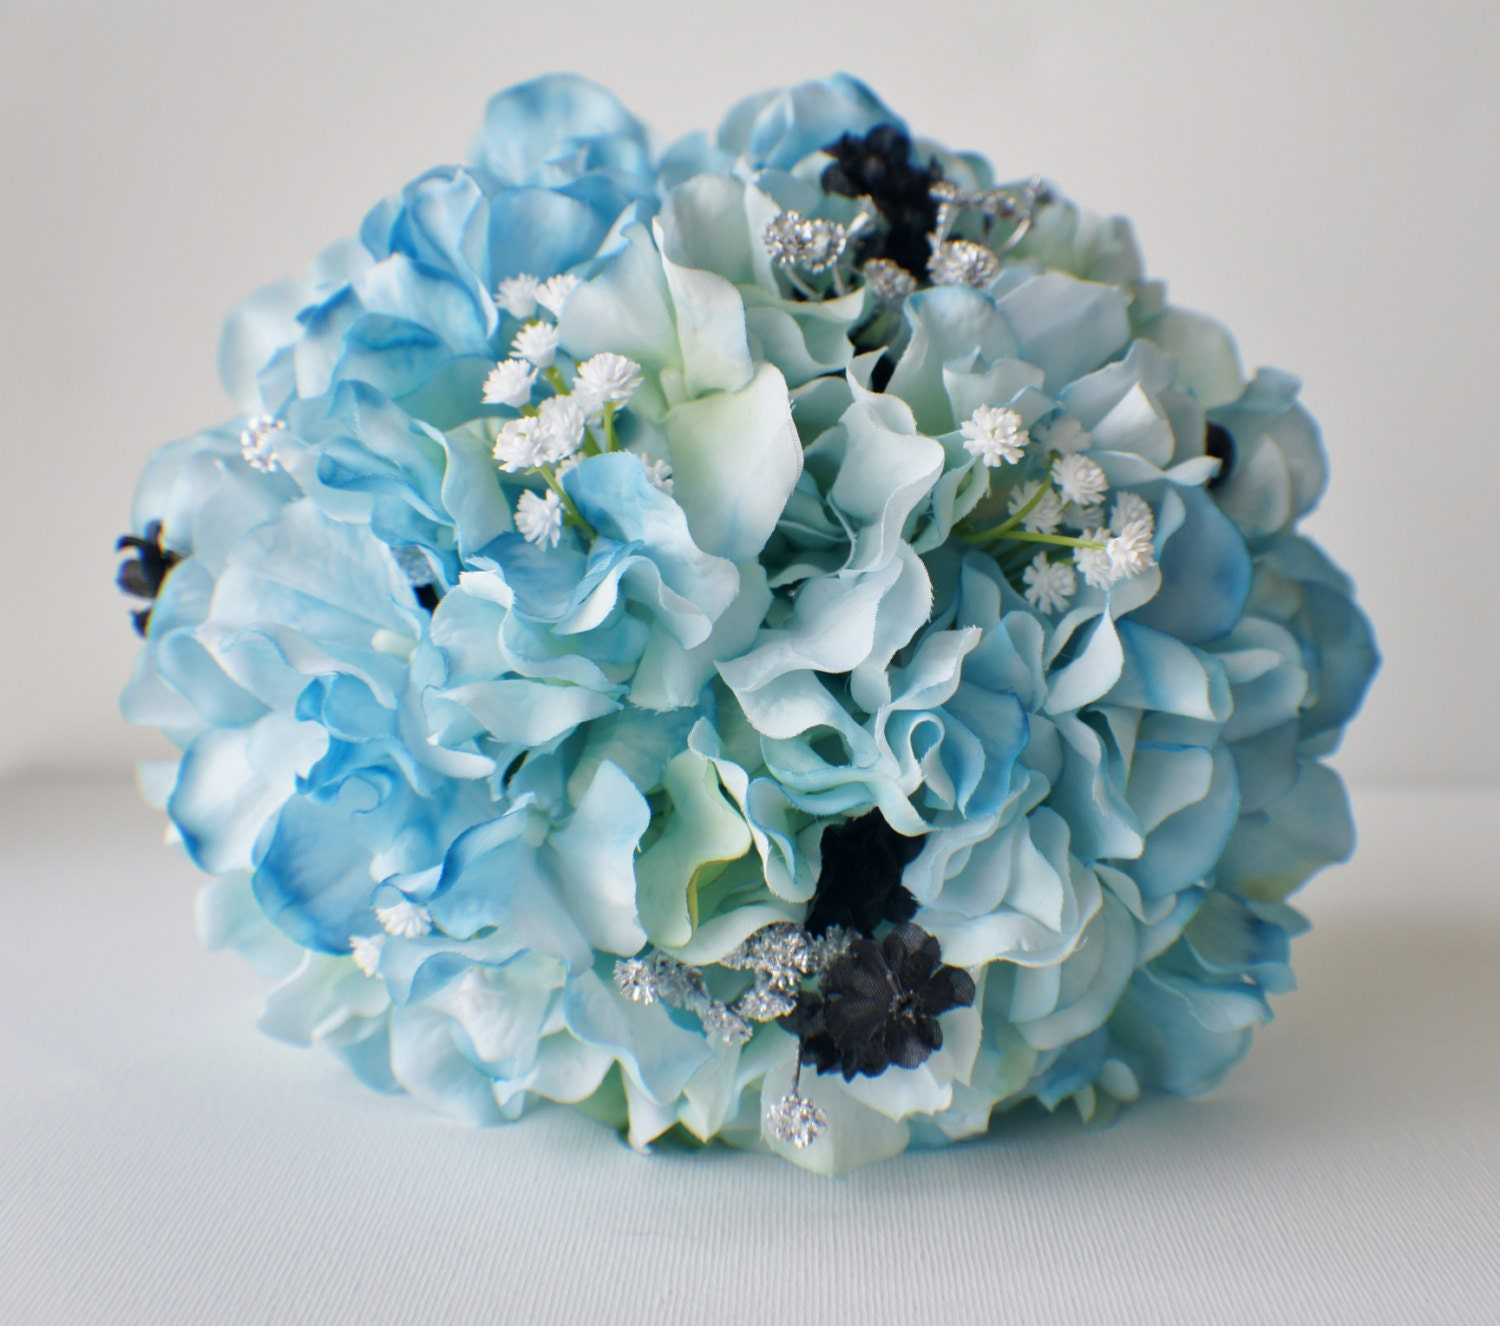 Blue Hydrangea Wedding Flowers: Blue Hydrangea Bouquet Silk Wedding Flowers Bridesmaid